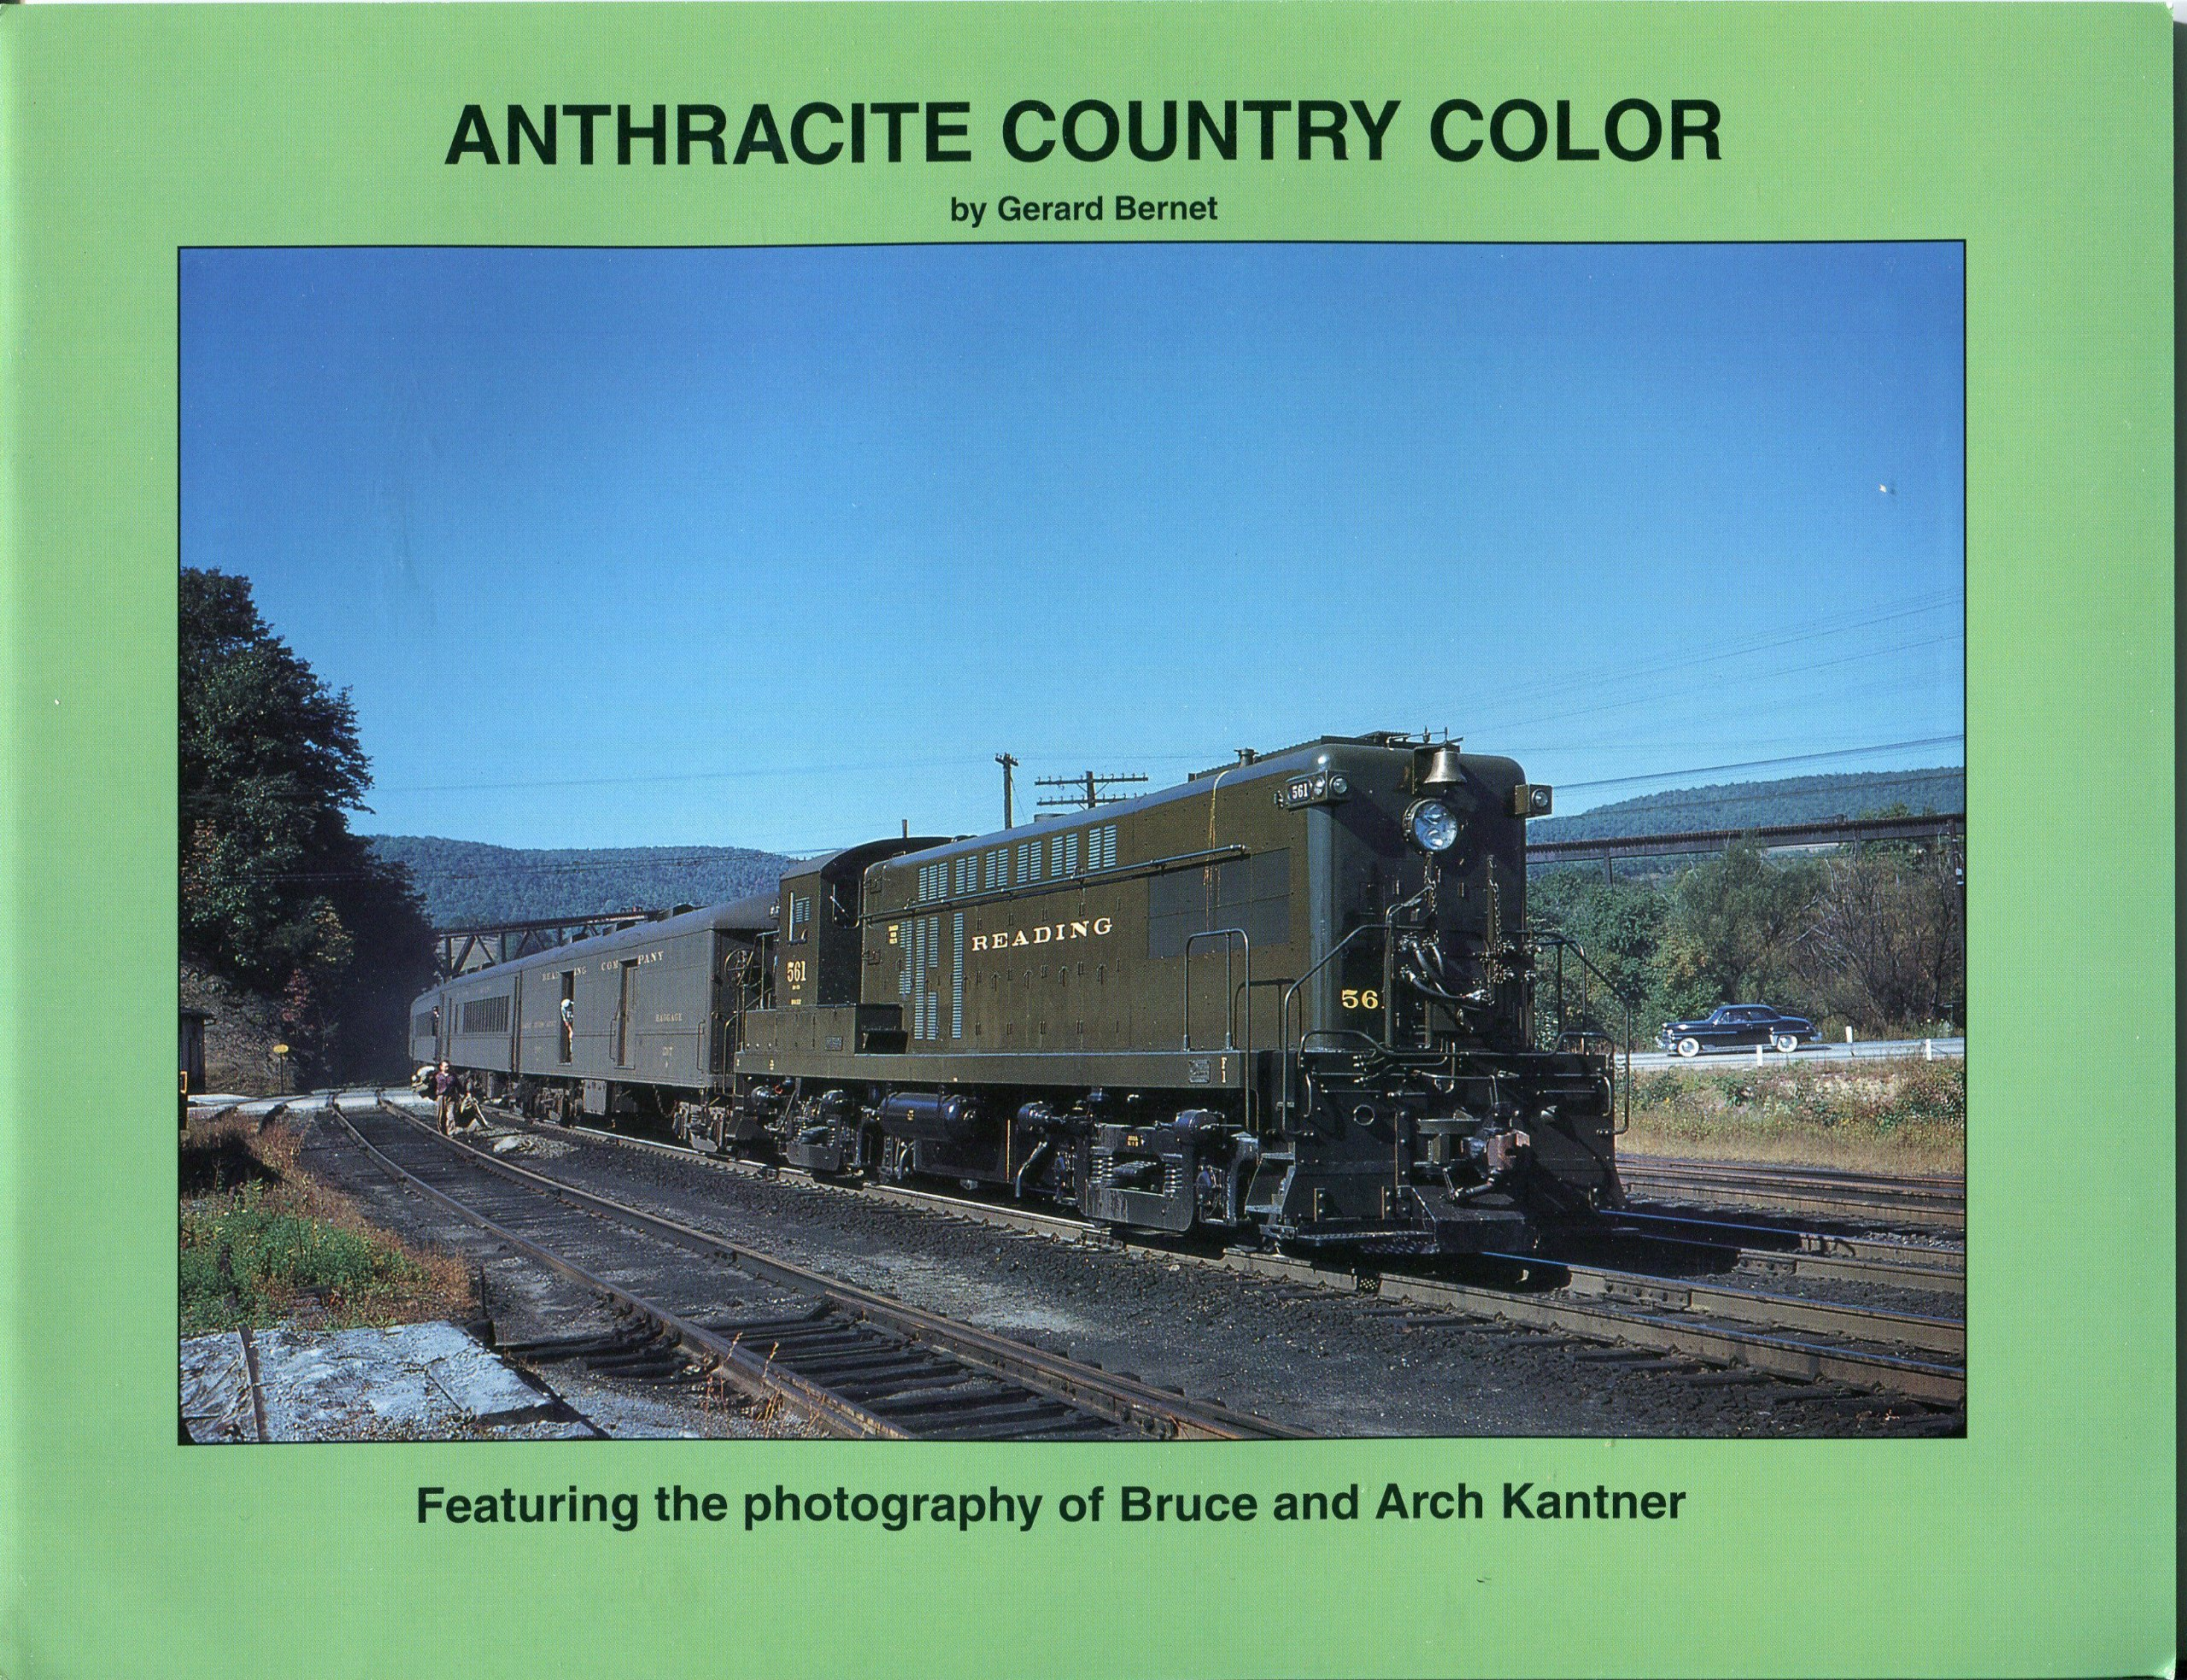 Anthracite Country Color Featuring the Photography of Bruce and Arch Kantner